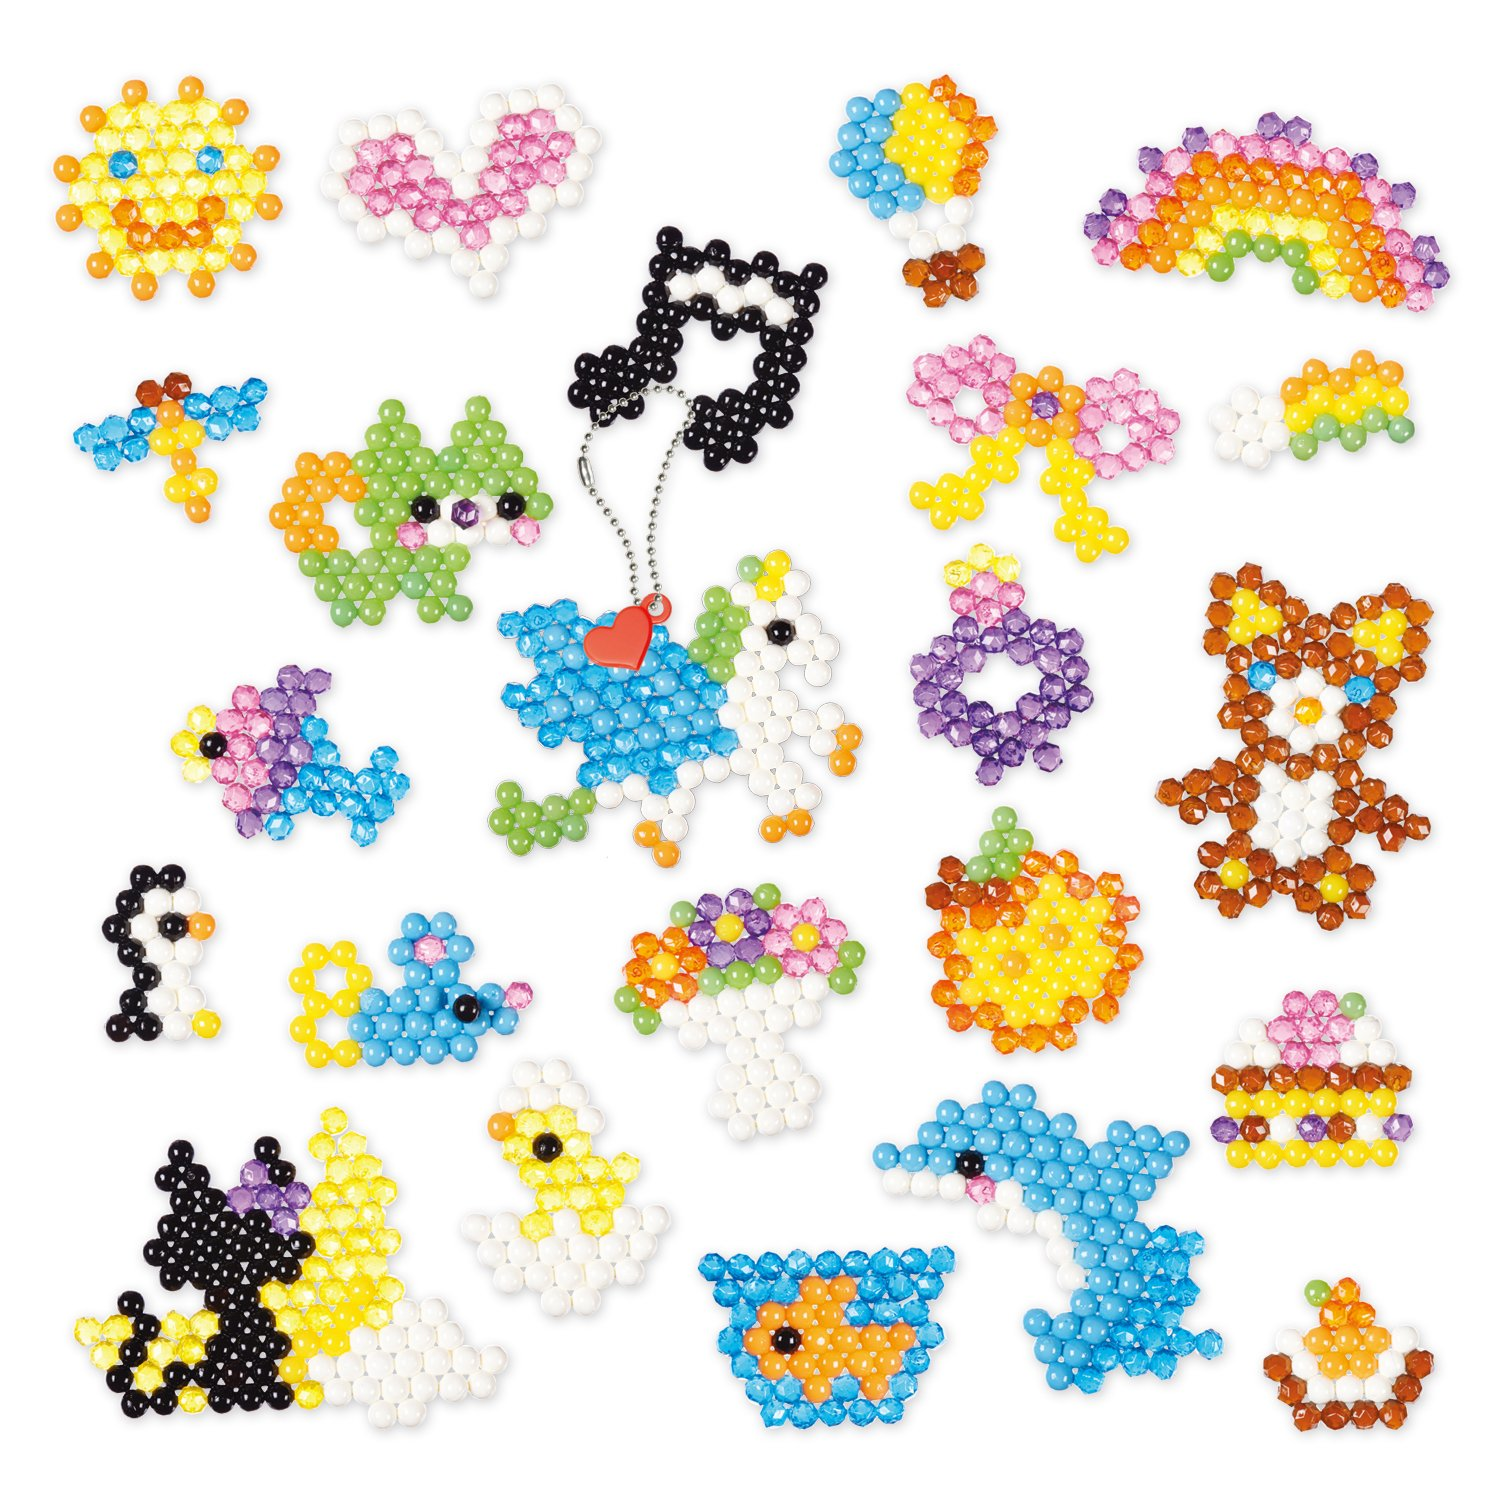 Amazoncom AquaBeads Ultimate Design Studio Playset Toys Games - Aquabeads templates